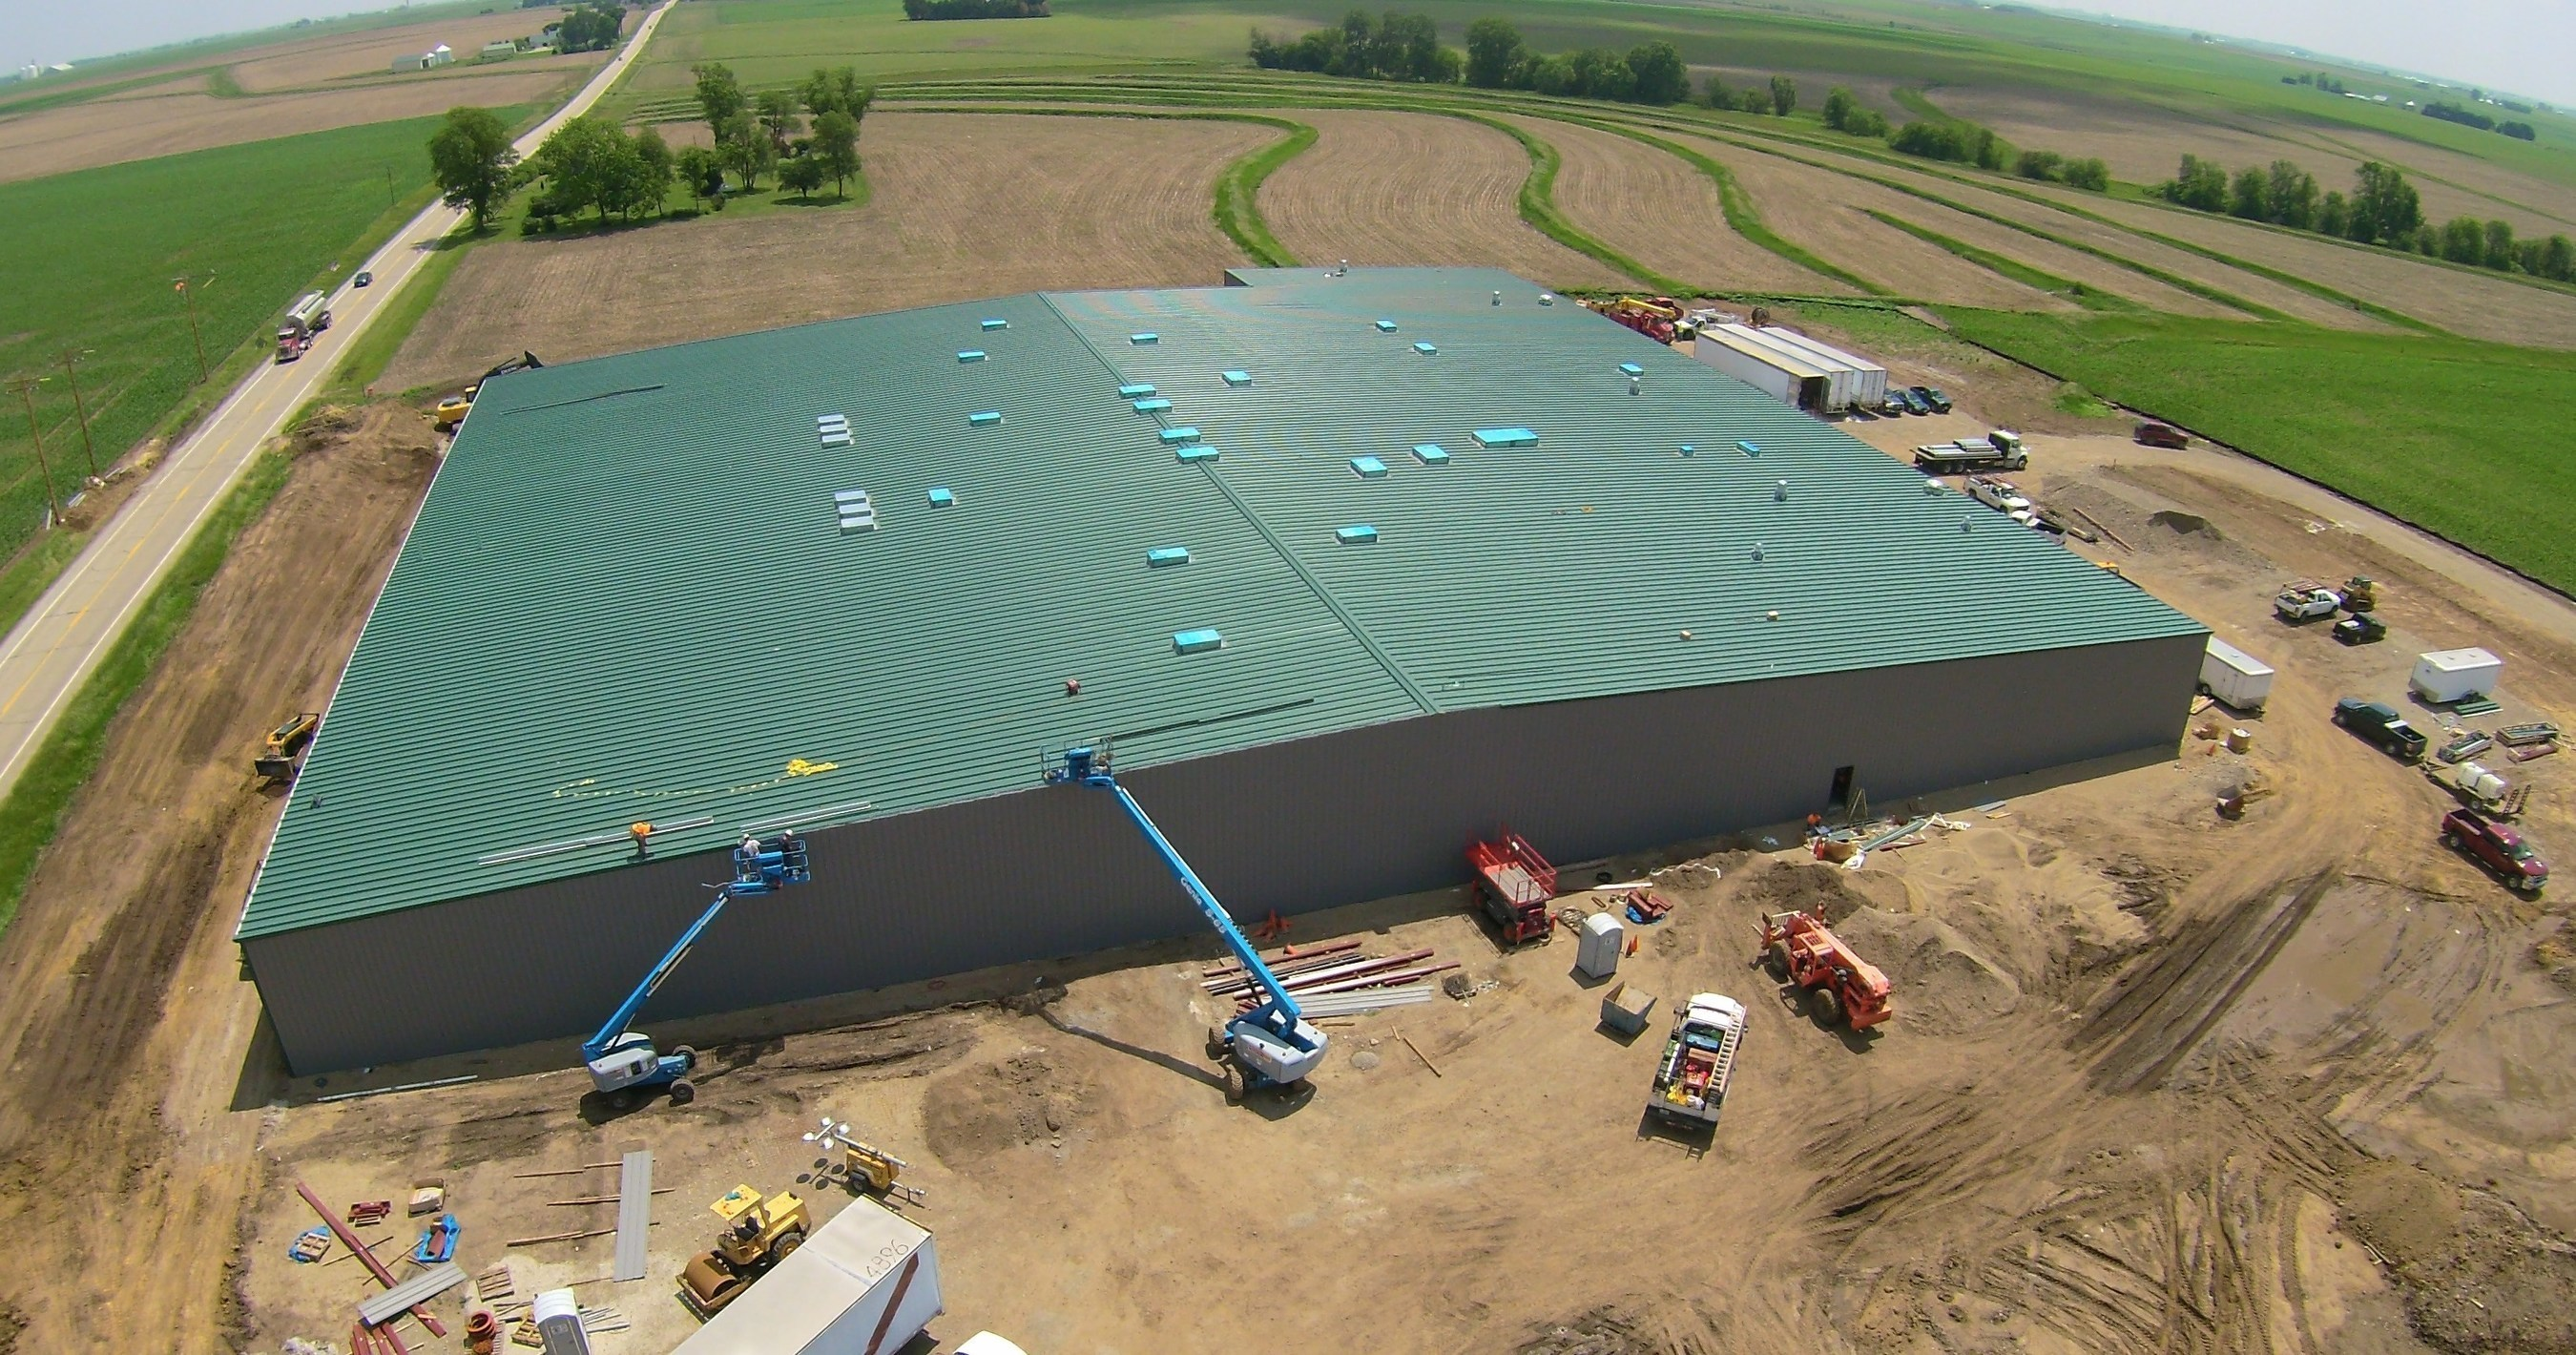 Revolution Cannabis- Delavan, a 75,000 sq. ft. cultivation and laboratory facility for producing the world's best cannabinoid medicines.